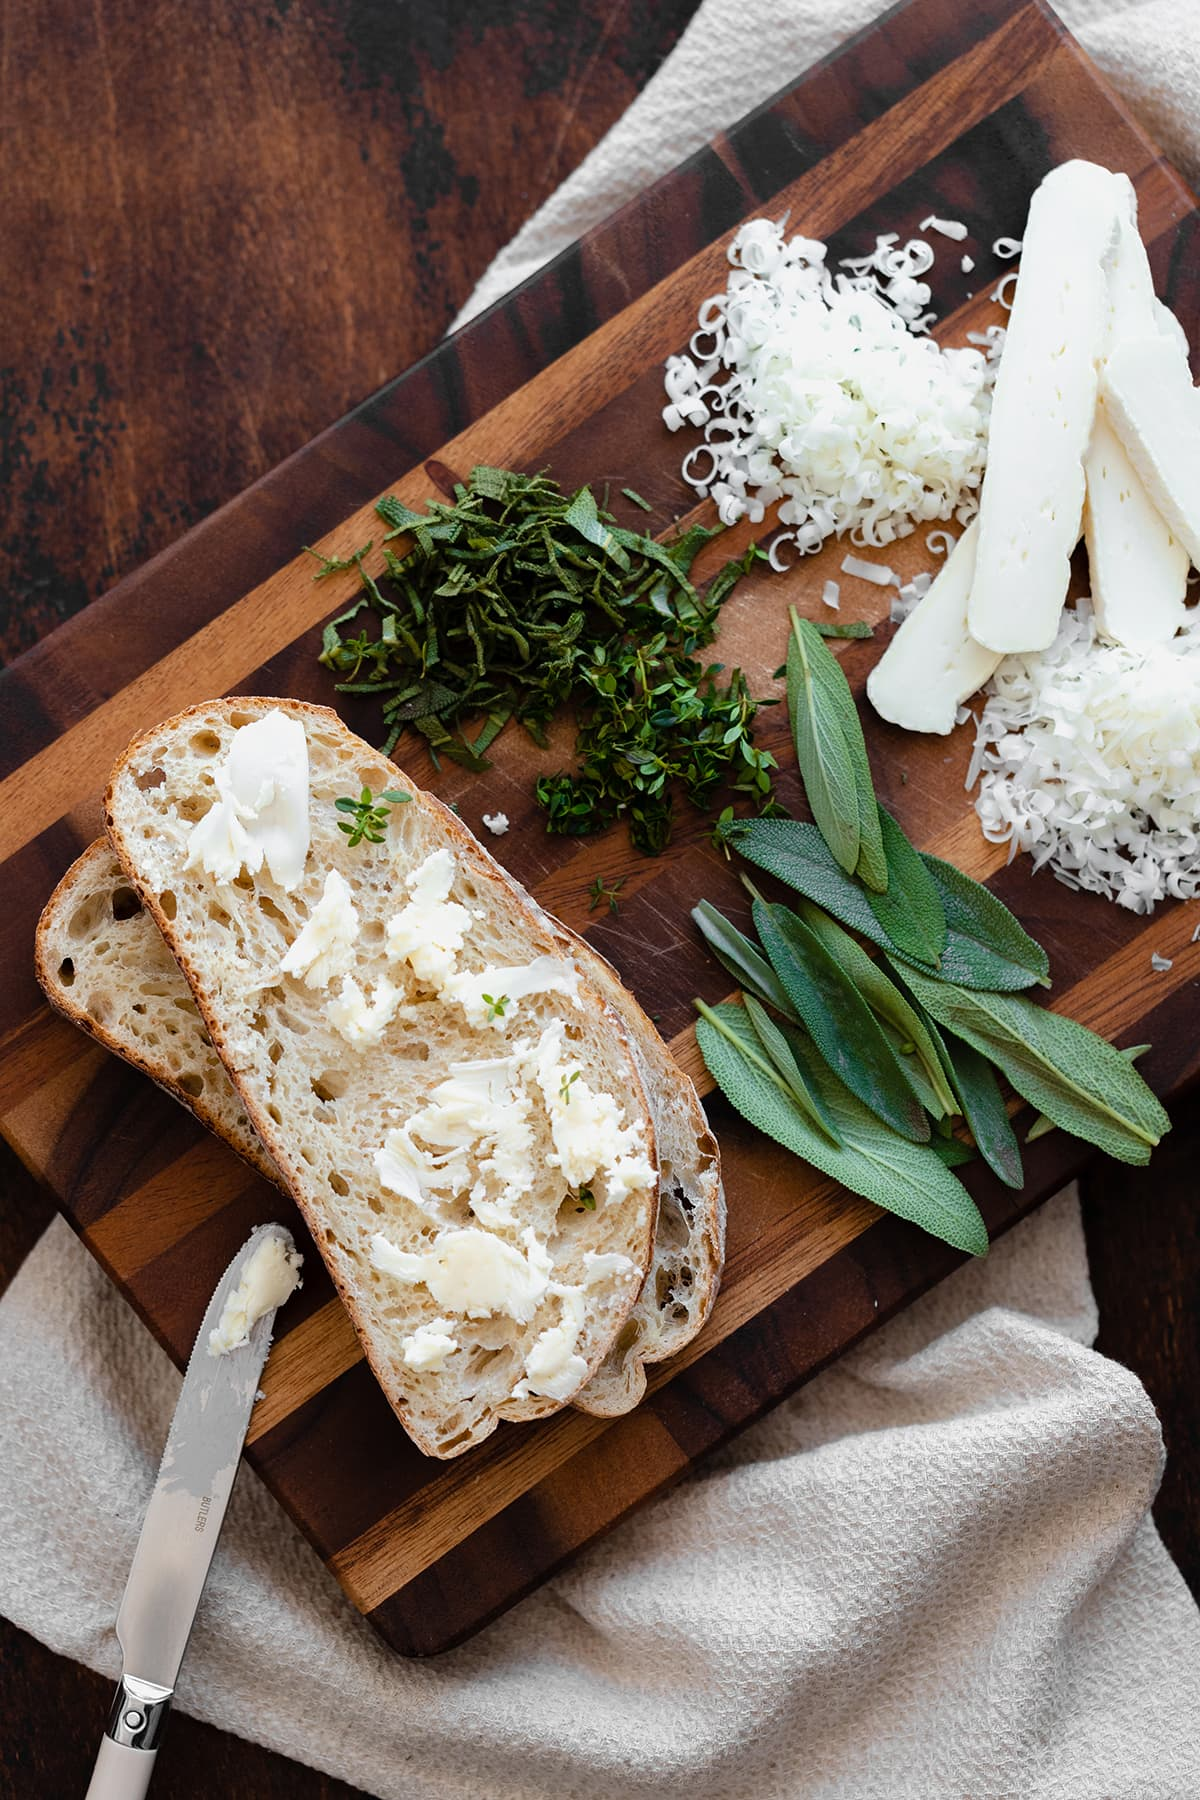 Ingredients for the Goat Grilled Cheese with Pear and Sage